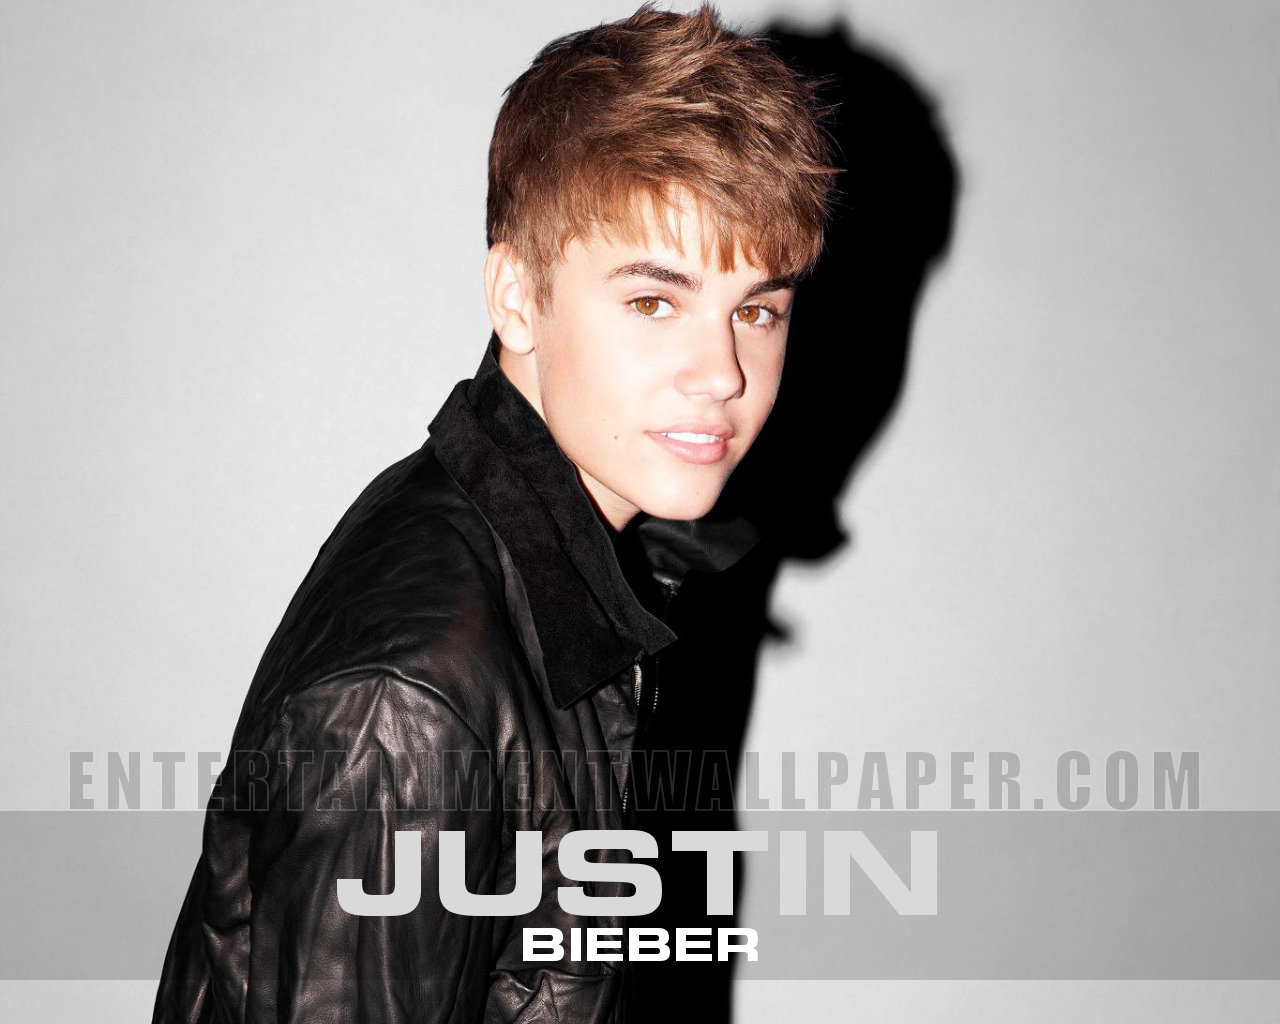 Justin Bieber Images Biebs HD Wallpaper And Background Photos